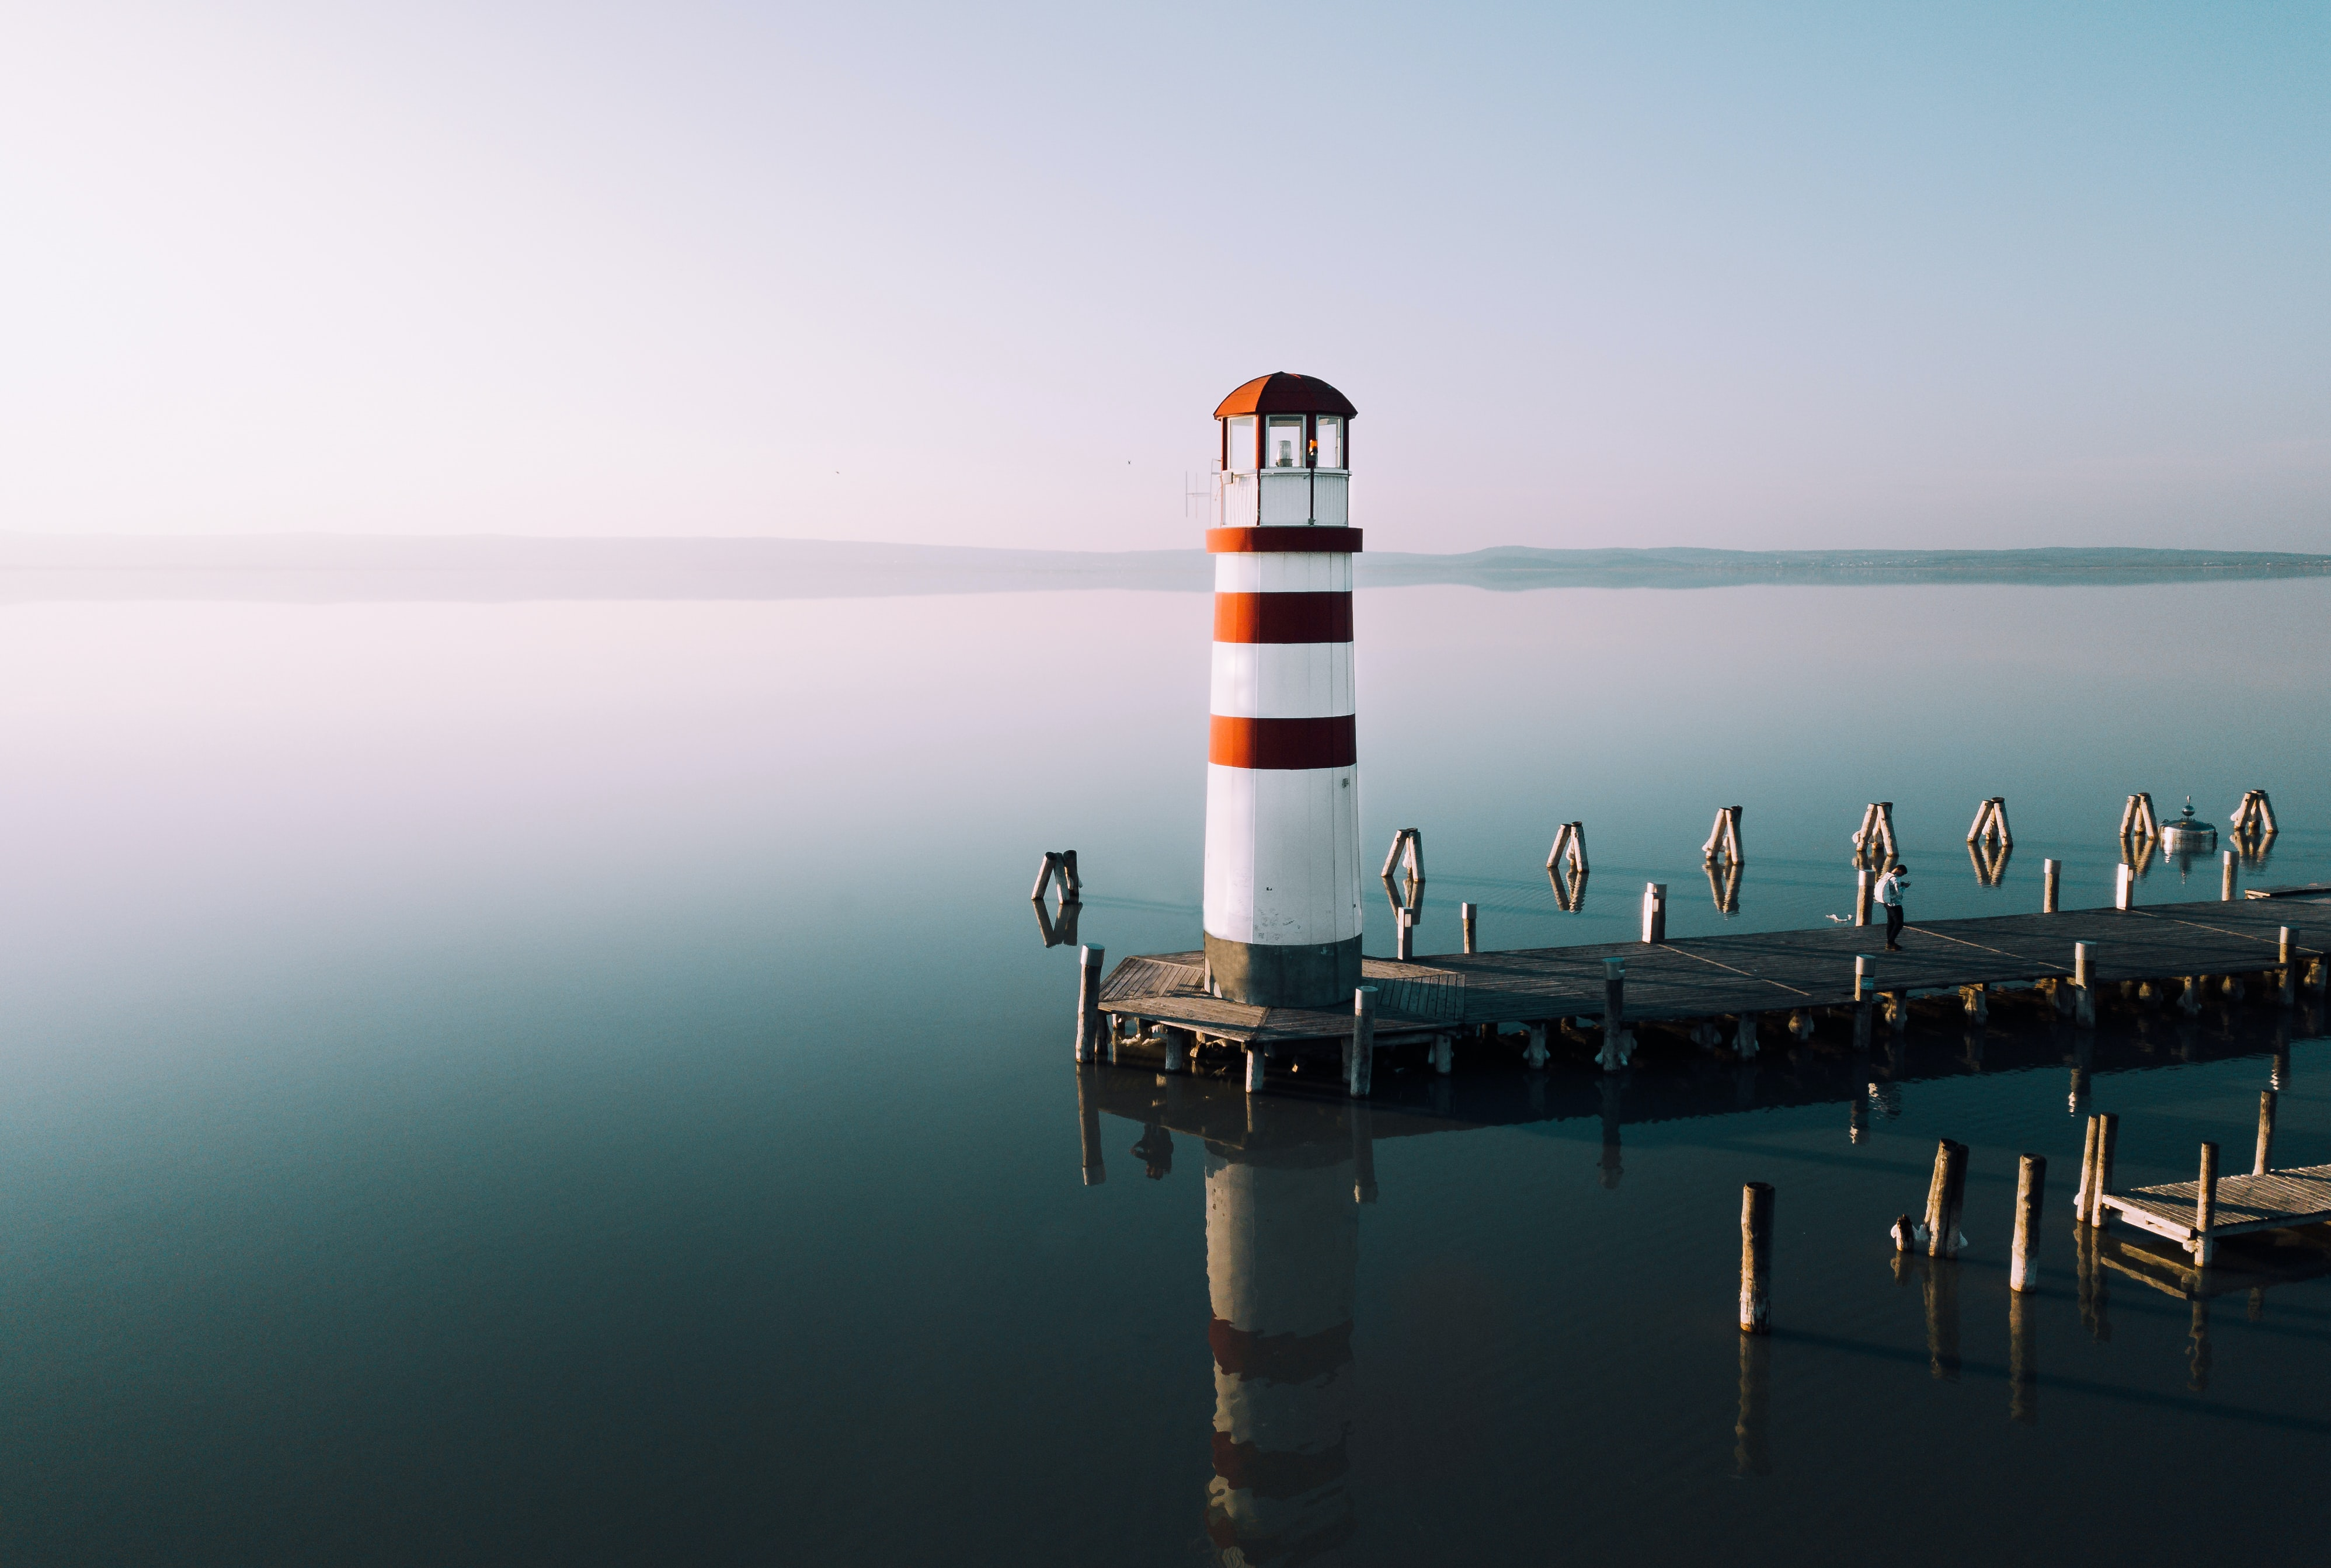 lighthouse near body of water